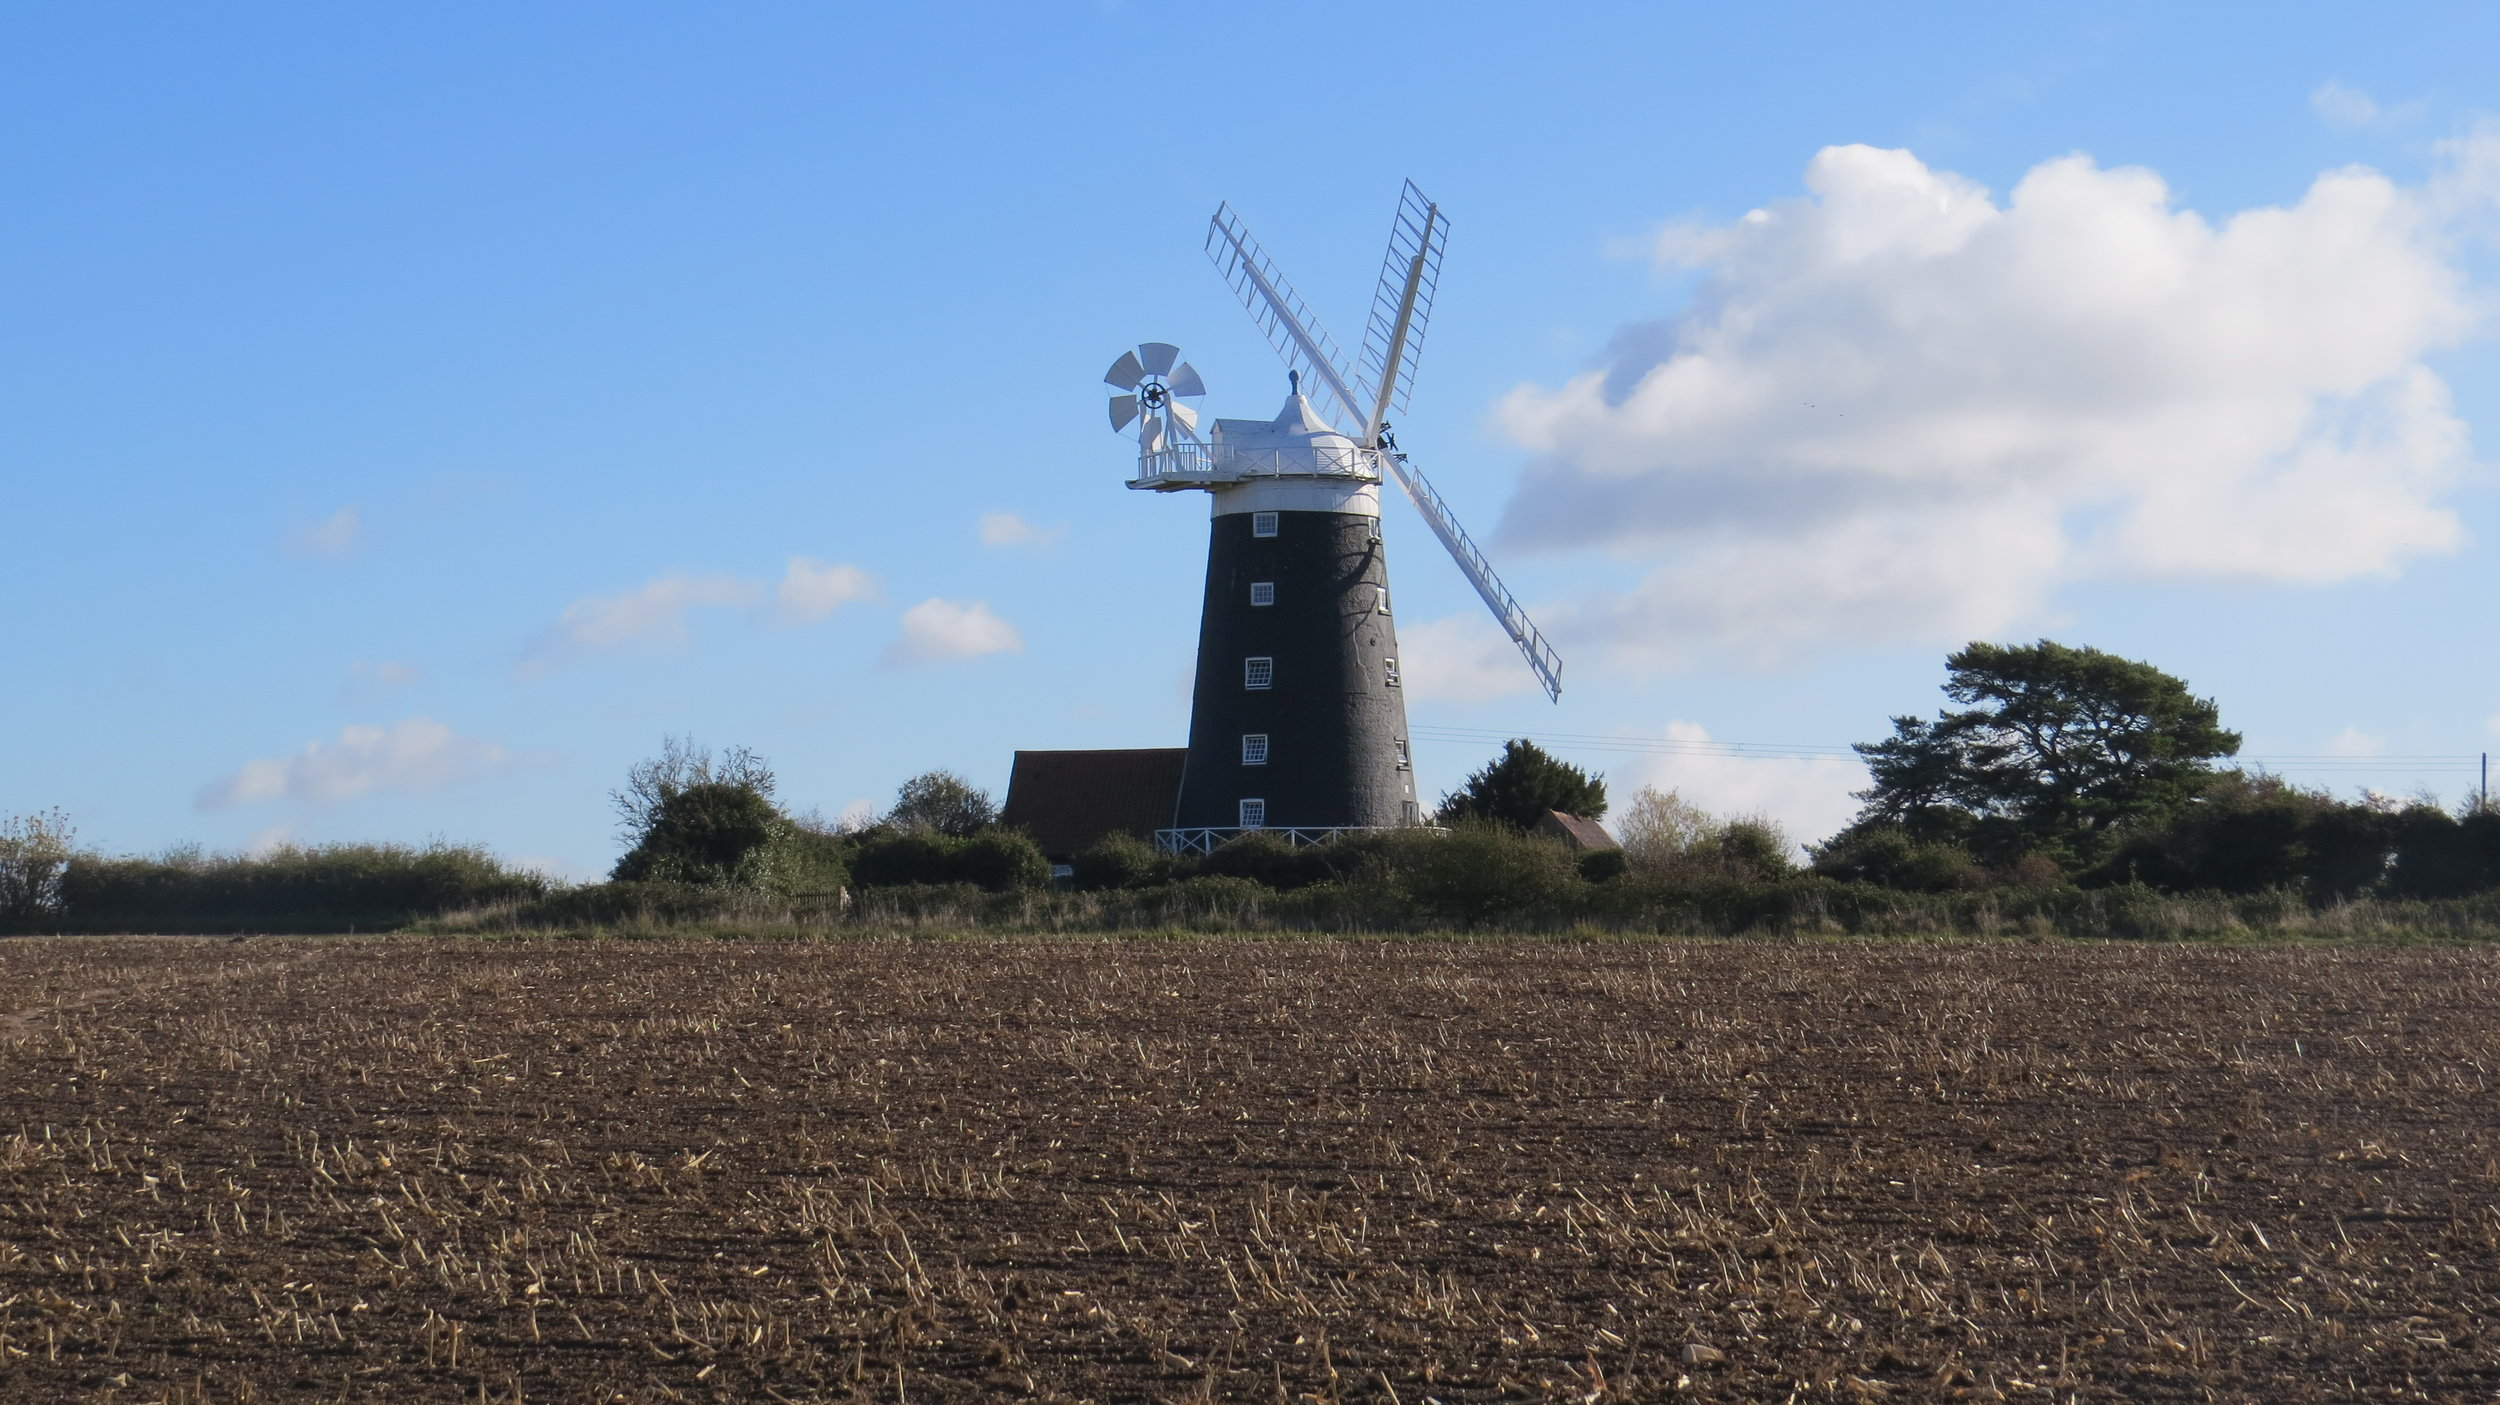 Burnham Overy Mill II